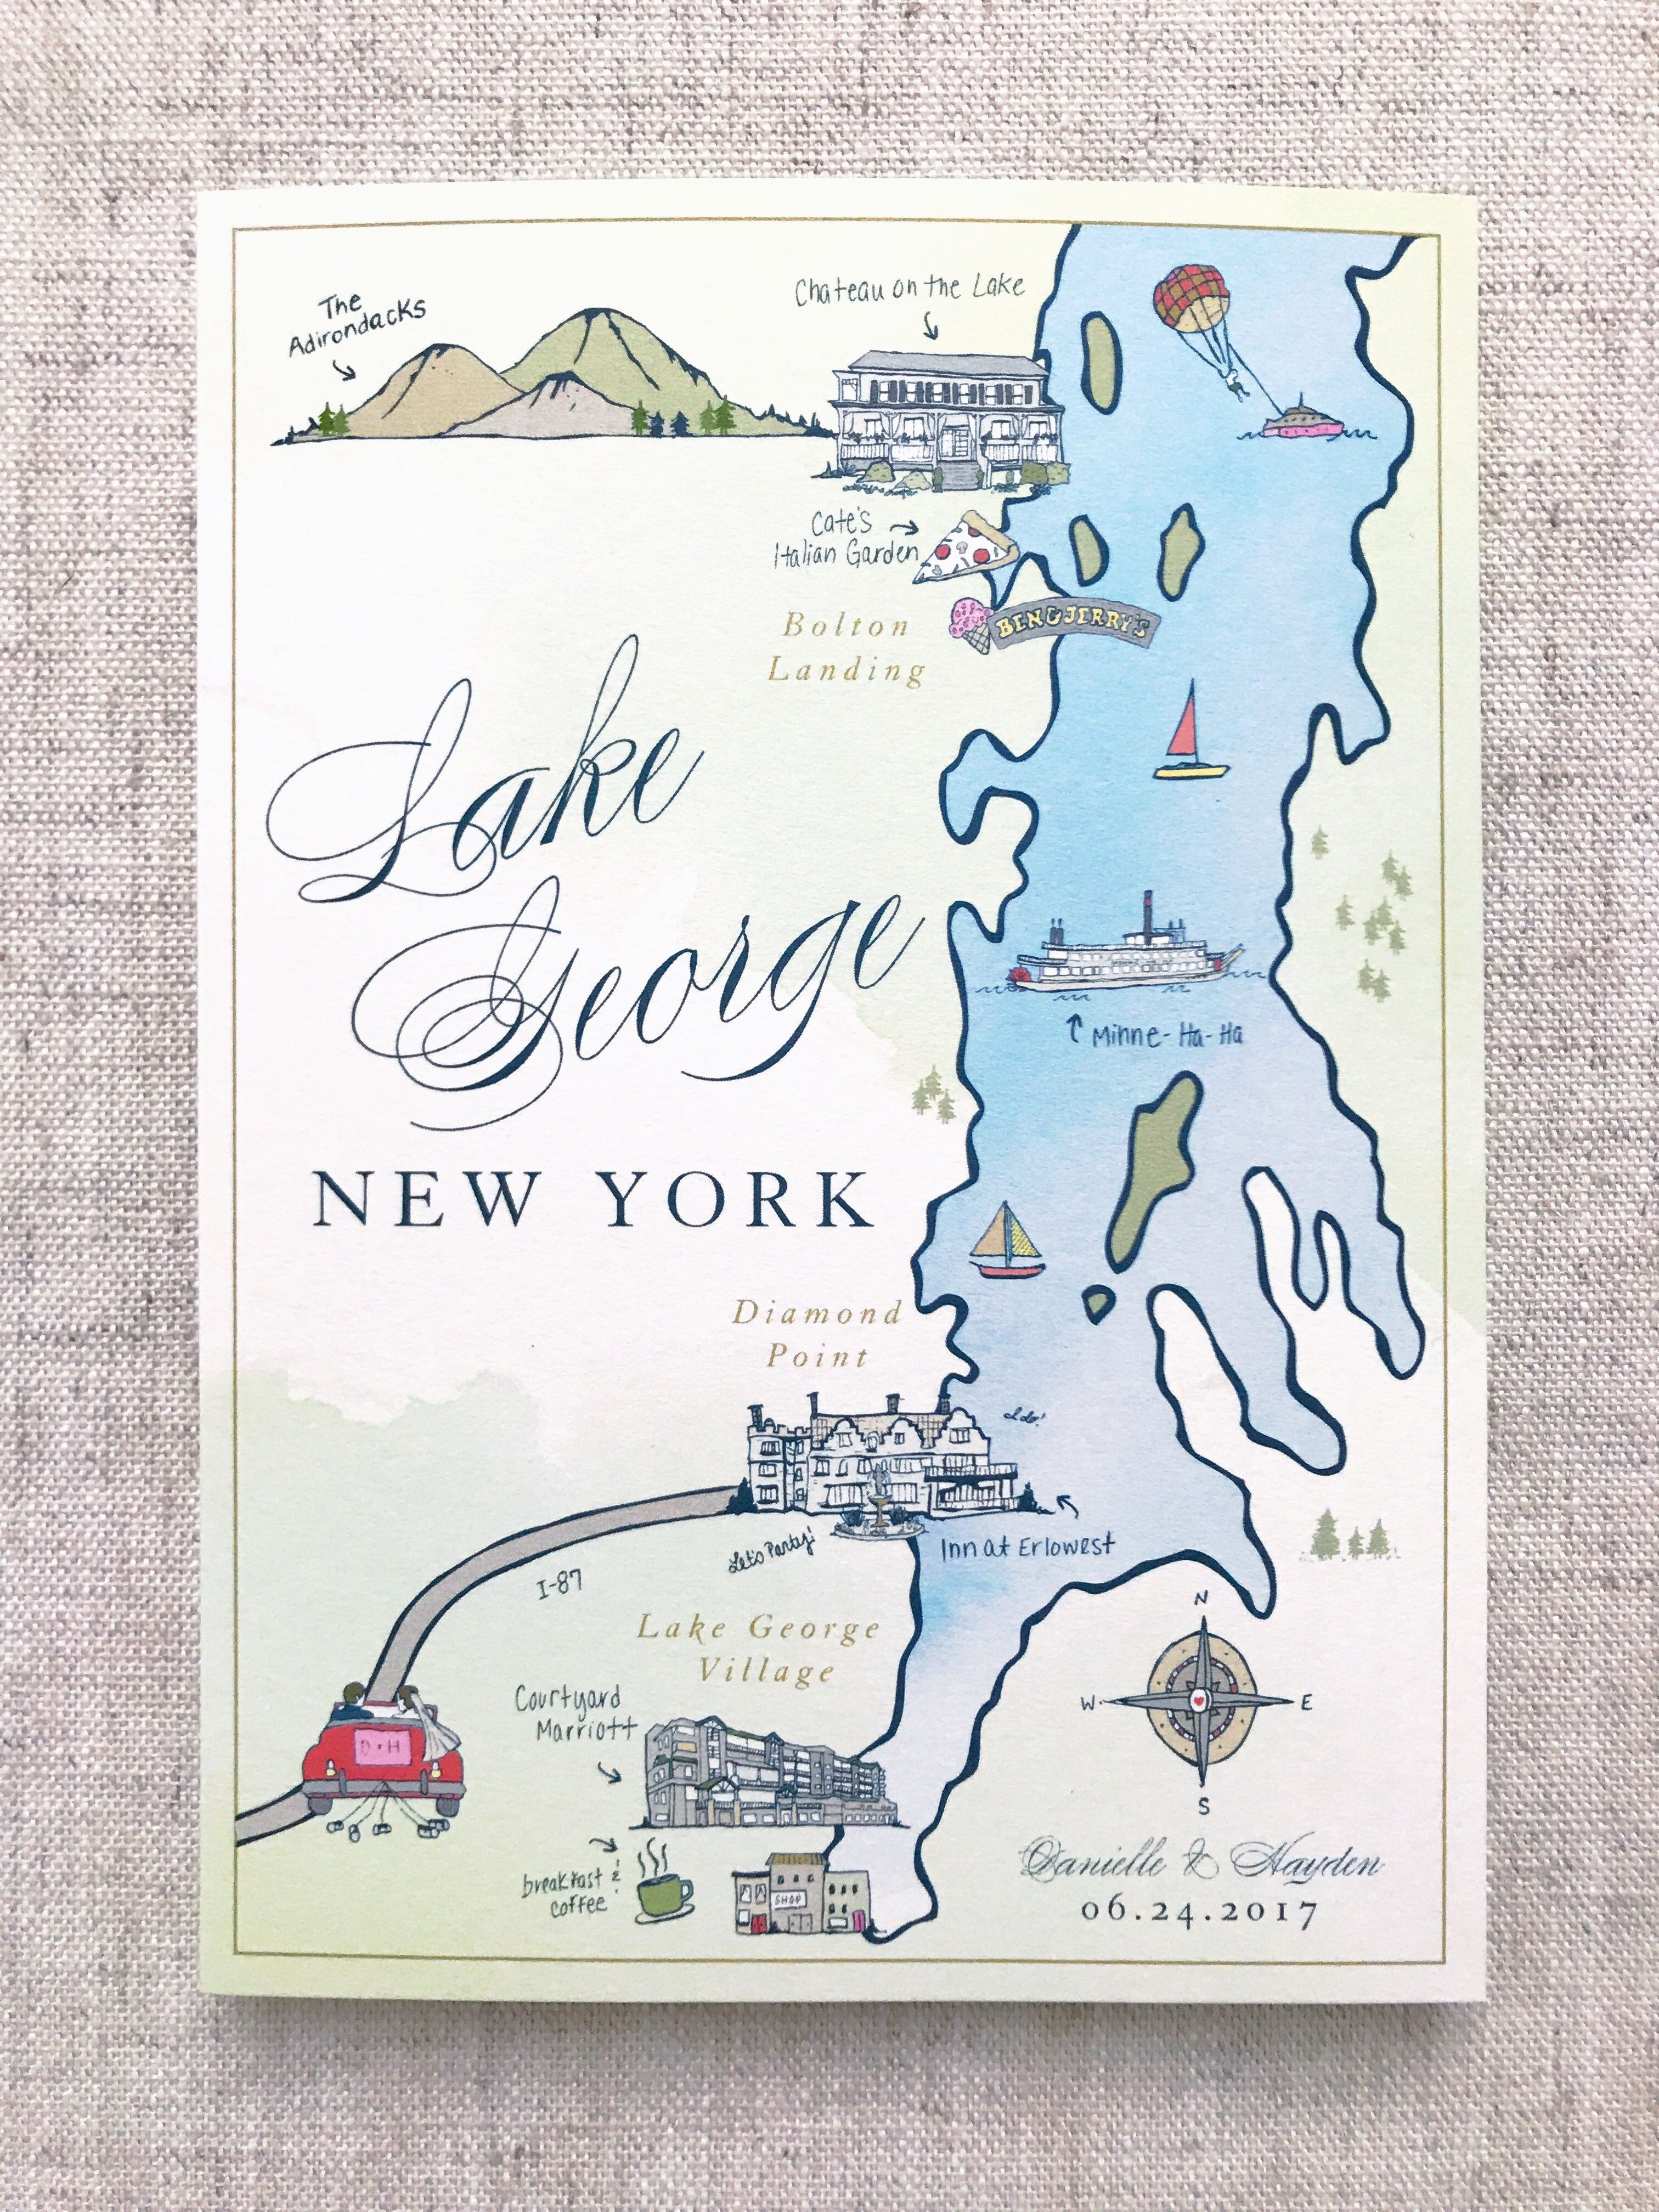 Custom Illustrated Map, Wedding Map, Illustration, Welcome Bag Ideas ...